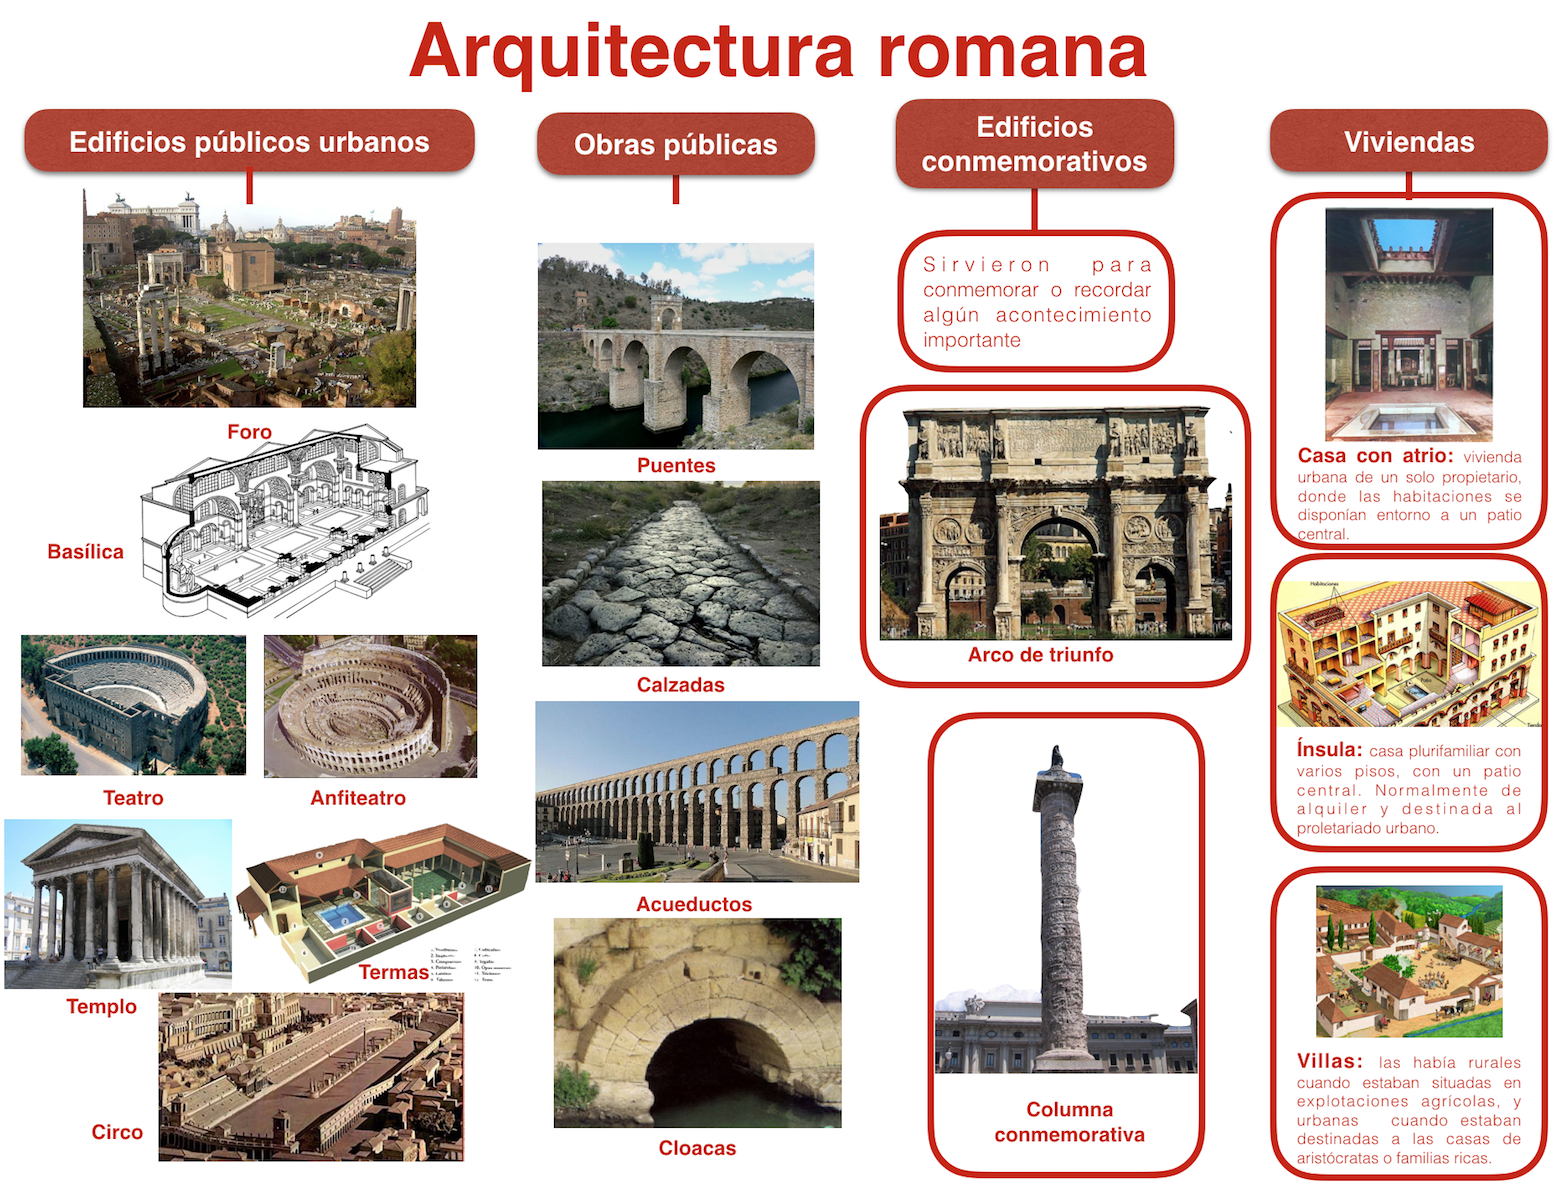 La antigua roma for Arquitectura romana pdf